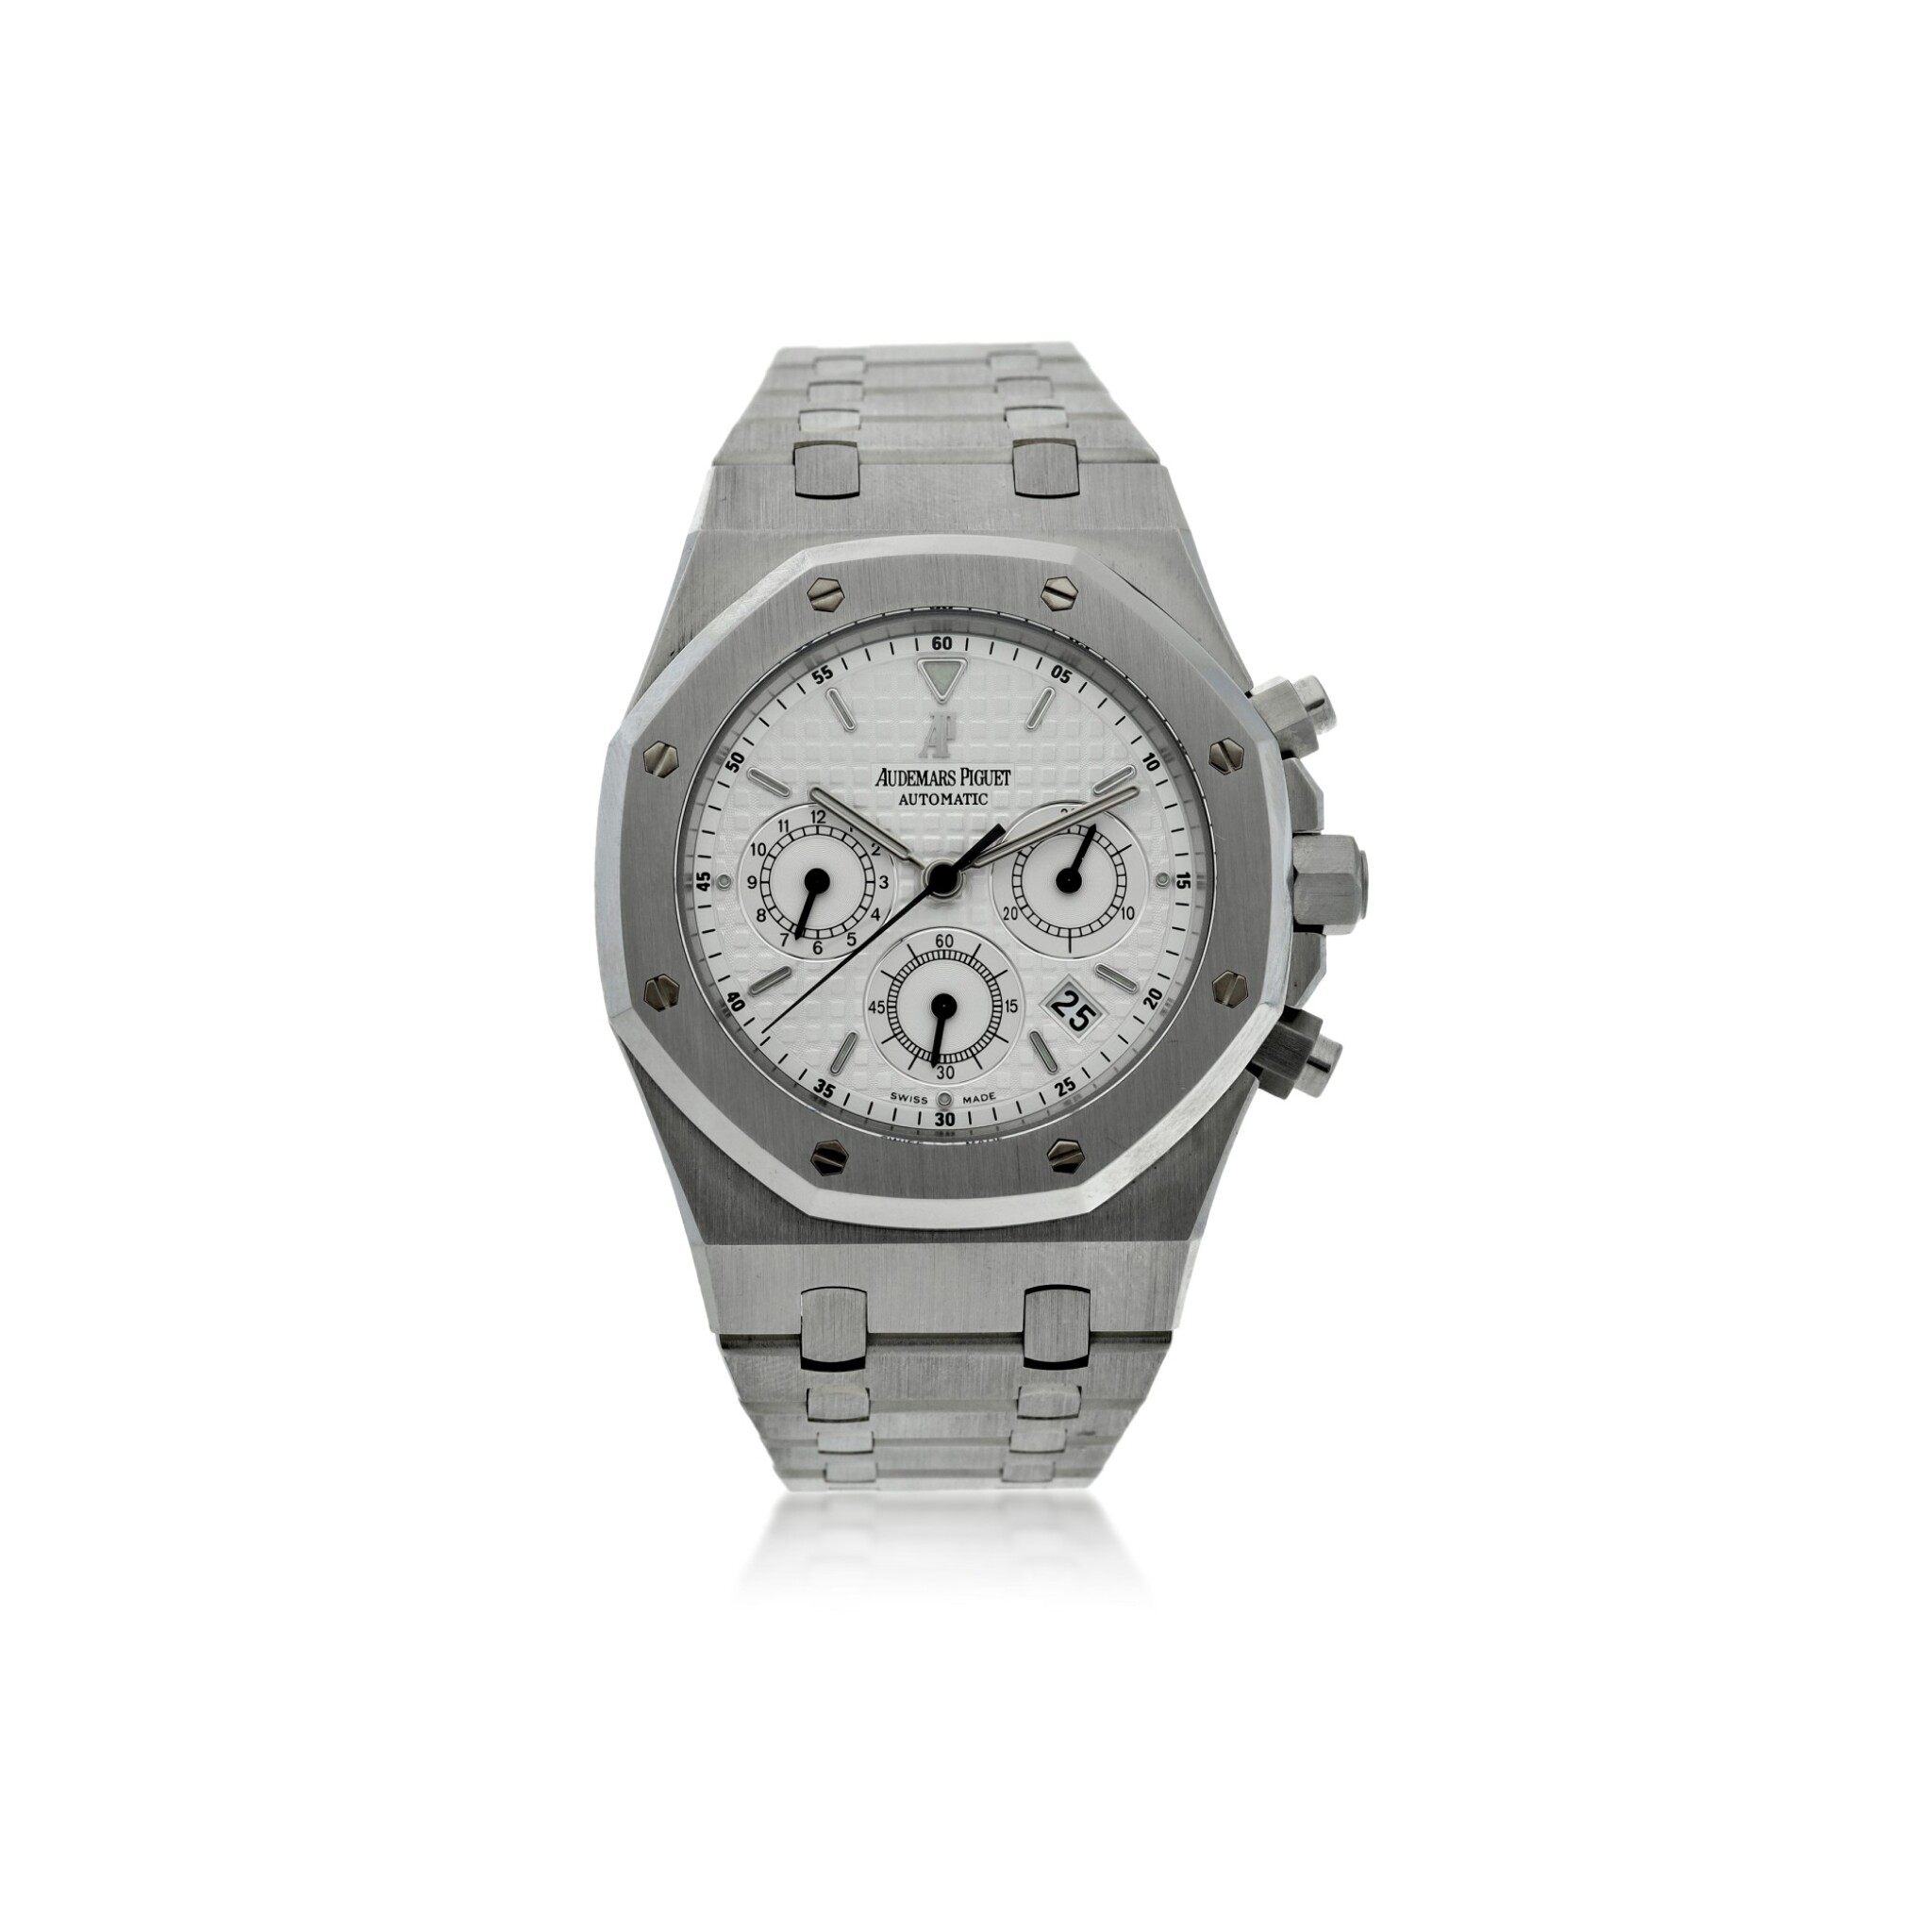 View full screen - View 1 of Lot 12. REFERENCE 25860ST.OO.110ST.05 ROYAL OAK A STAINLESS STEEL AUTOMATIC CHRONOGRAPH BRACELET WRISTWATCH WITH DATE AND BRACELET, DONATED AND SIGNED BY GEORGE H.W. BUSH TO A SAVE THE CHILDREN CHARITY IN 2007.